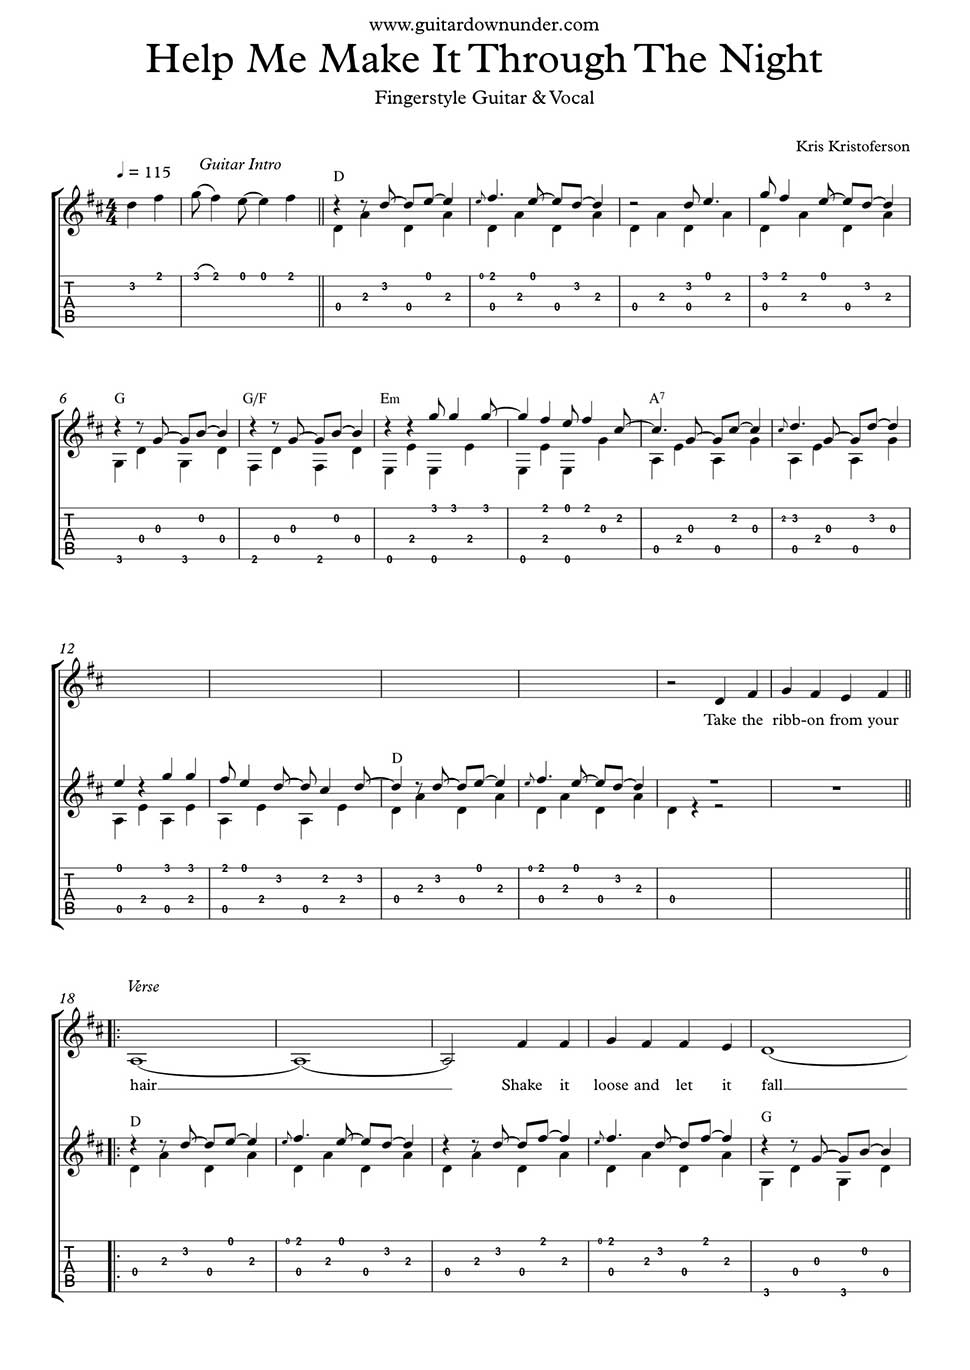 Help me make it through the night fingerstyle guitar part in tab help me make it through the night fingerstyle guitar part in tab chords and lyrics hexwebz Images